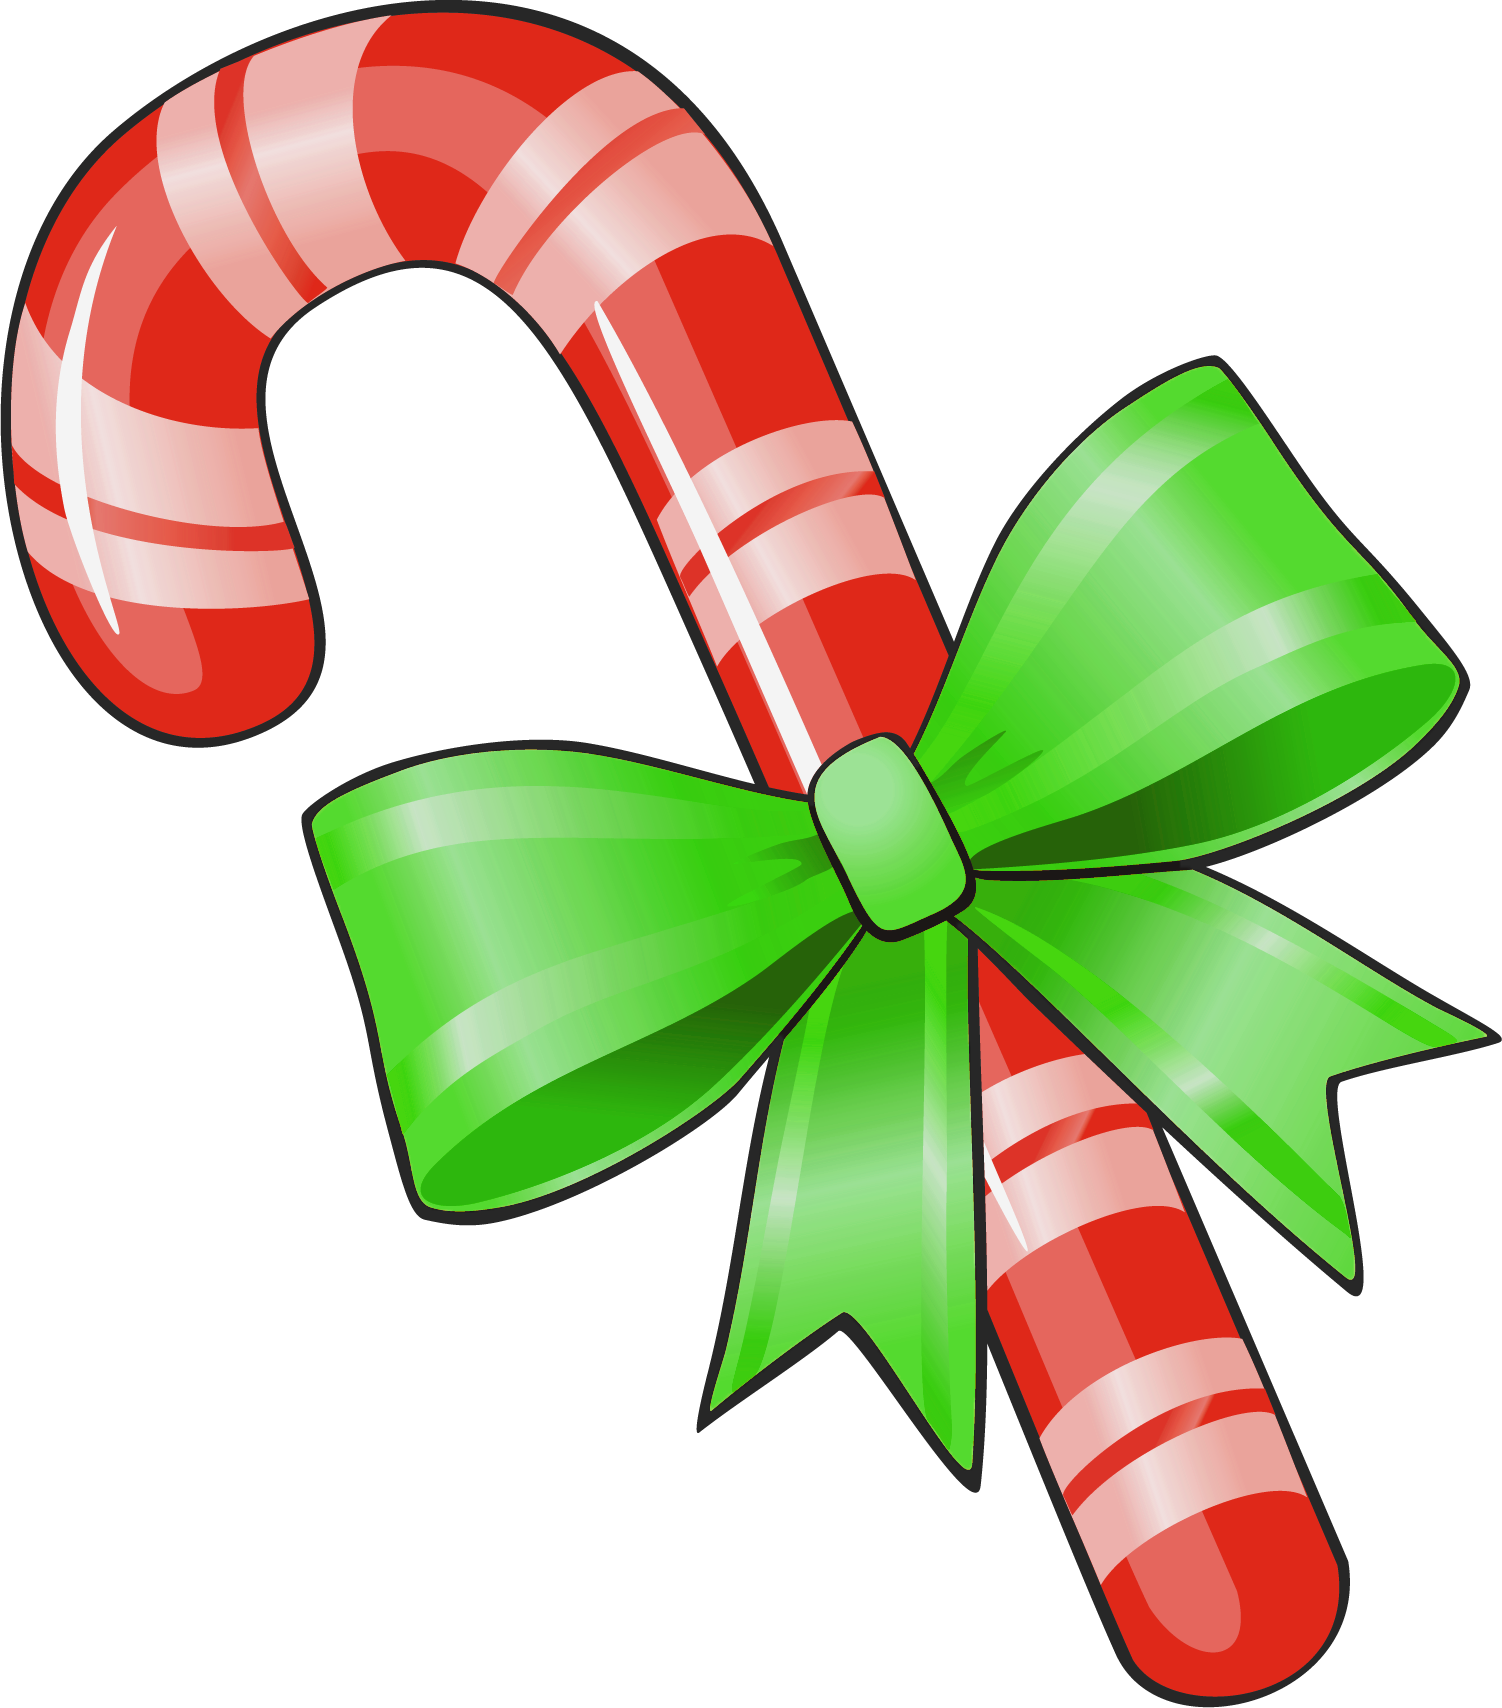 Christmas Candy Cane Clip Art Free Clipart Images Clipartix Christmas Graphics Christmas Candy Cane Holiday Graphics